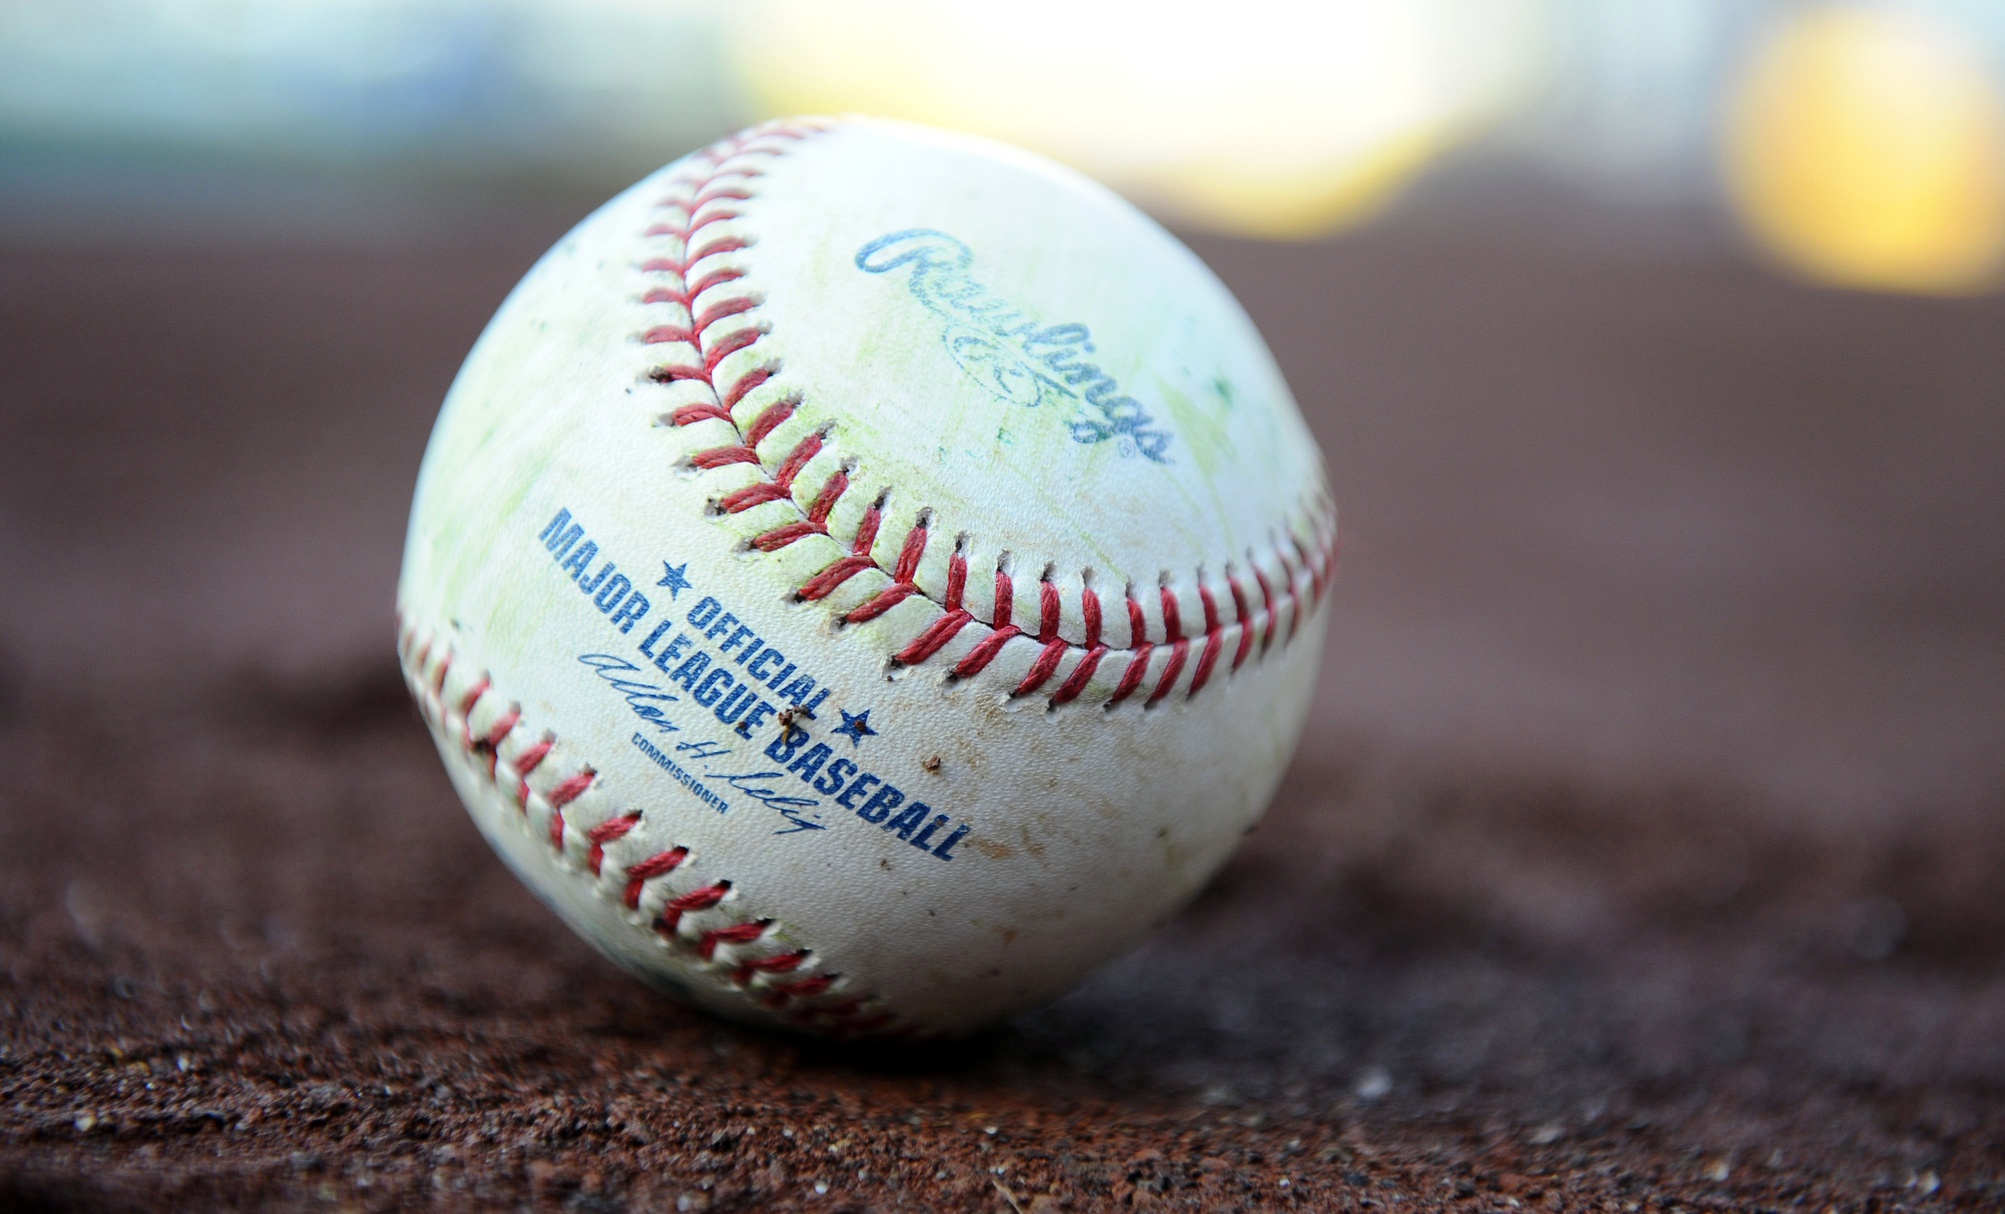 How Many Baseballs Are Used in an Average Game?